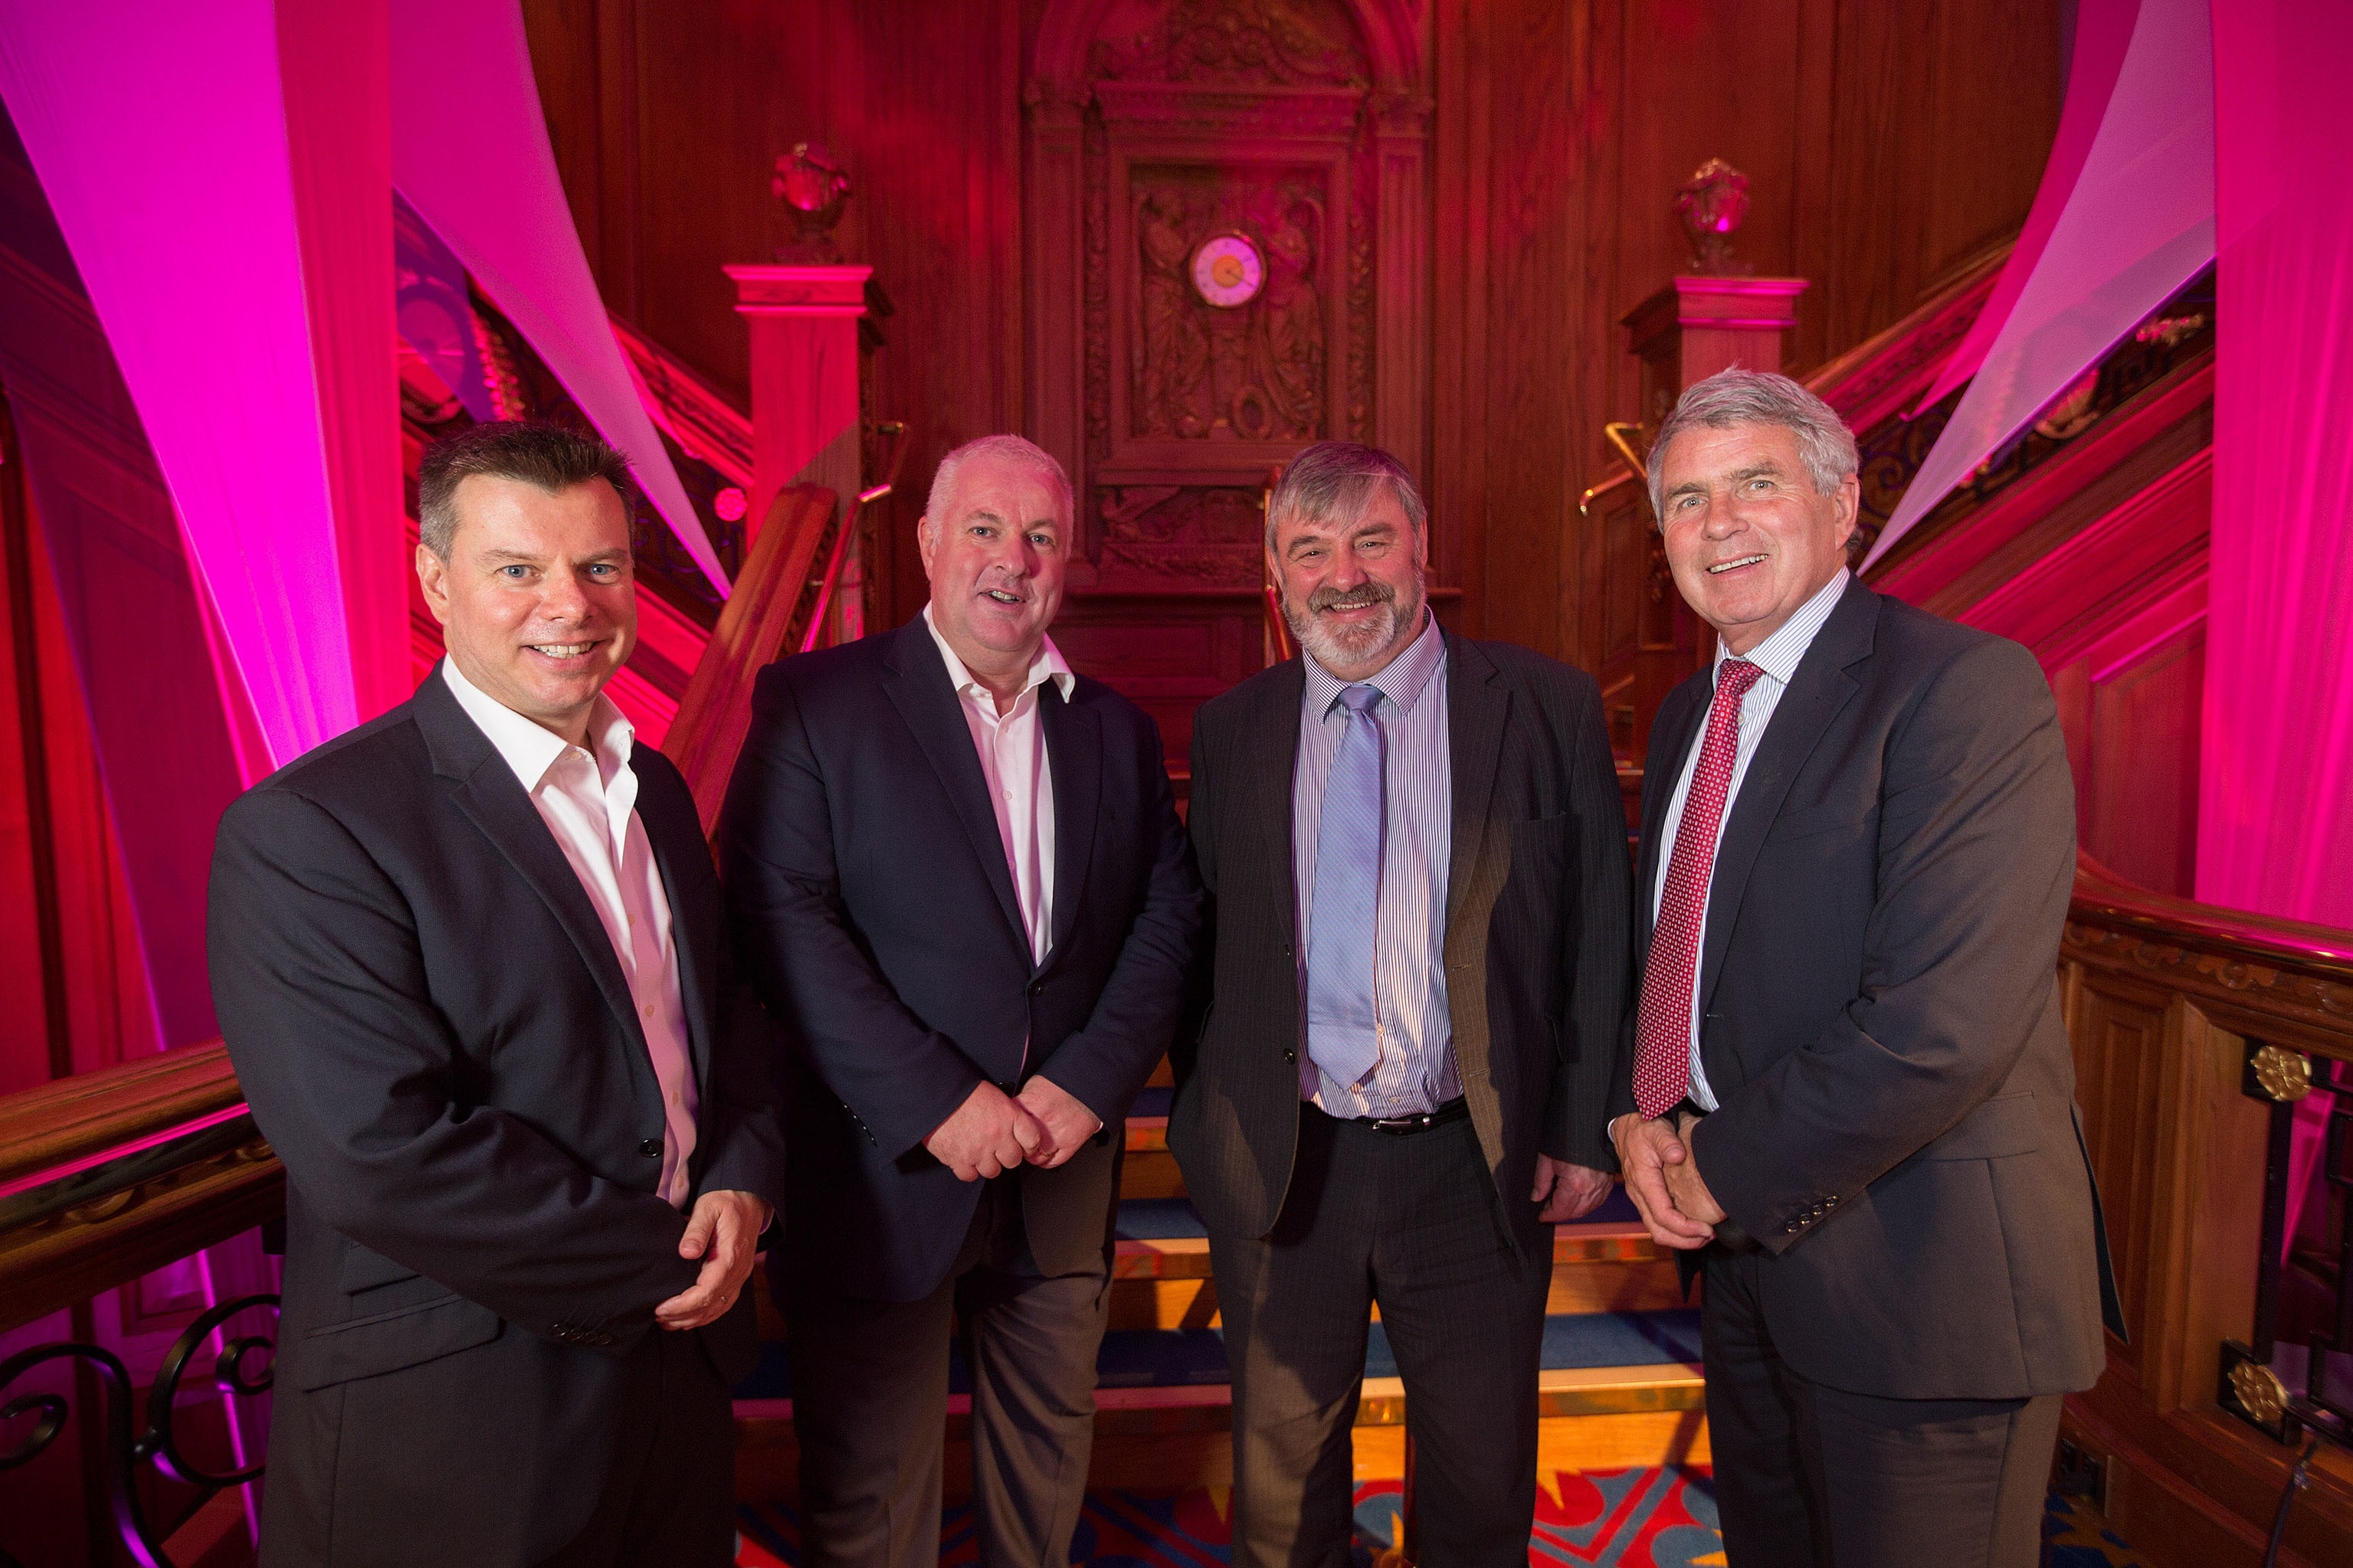 Steve Orr, Director, NISP, Greg McDaid from Fujitsu with Norman Apsley, Chief Executive Officer at NISP and Dick Milliken, Chairman, NISP